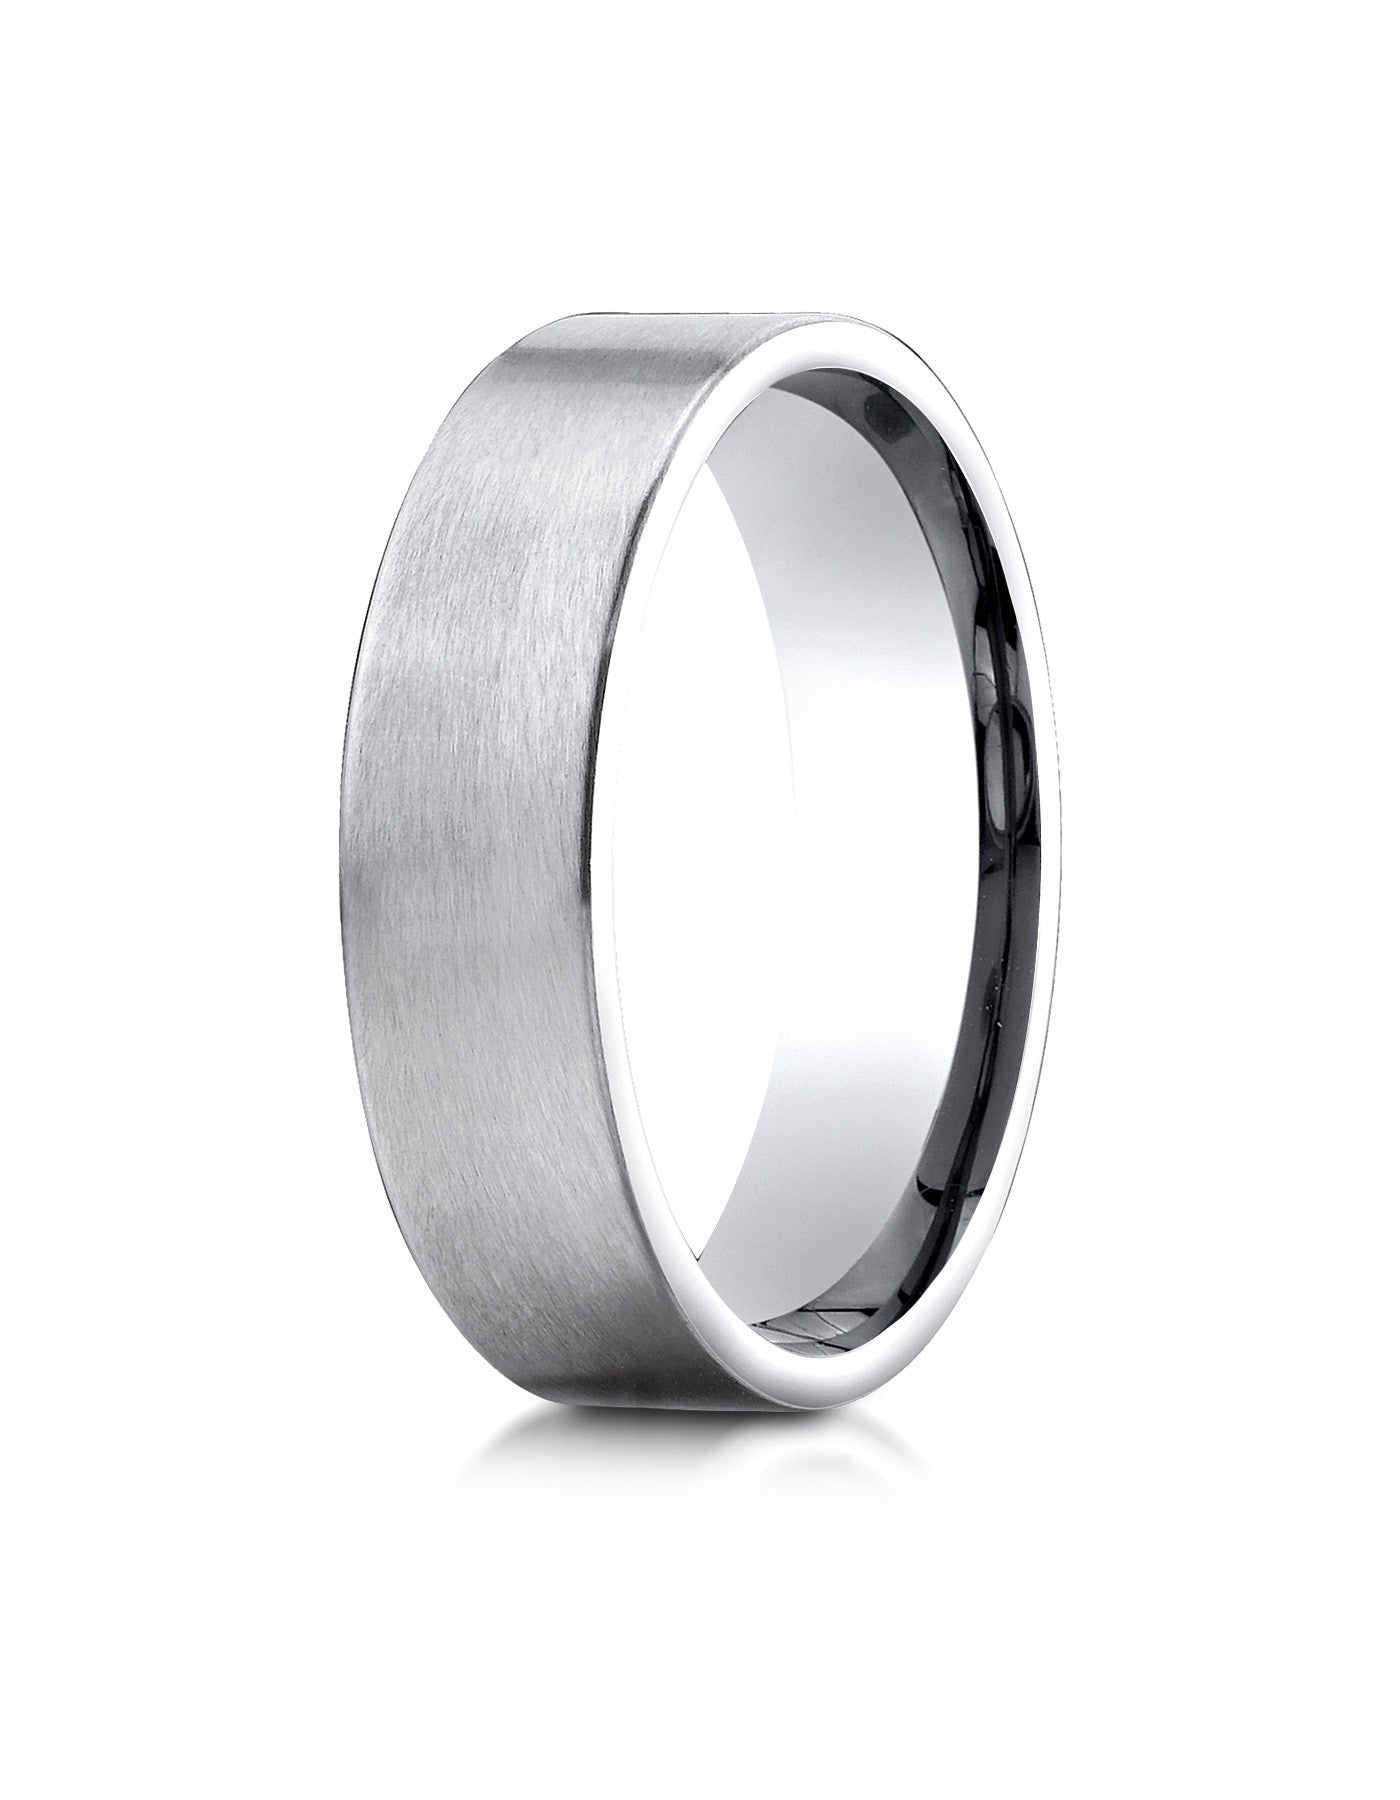 slight images beveled stylish on this benchmark band best high edge a polished pinterest features design and bands wedding mervisdiamonds carved fit comfort